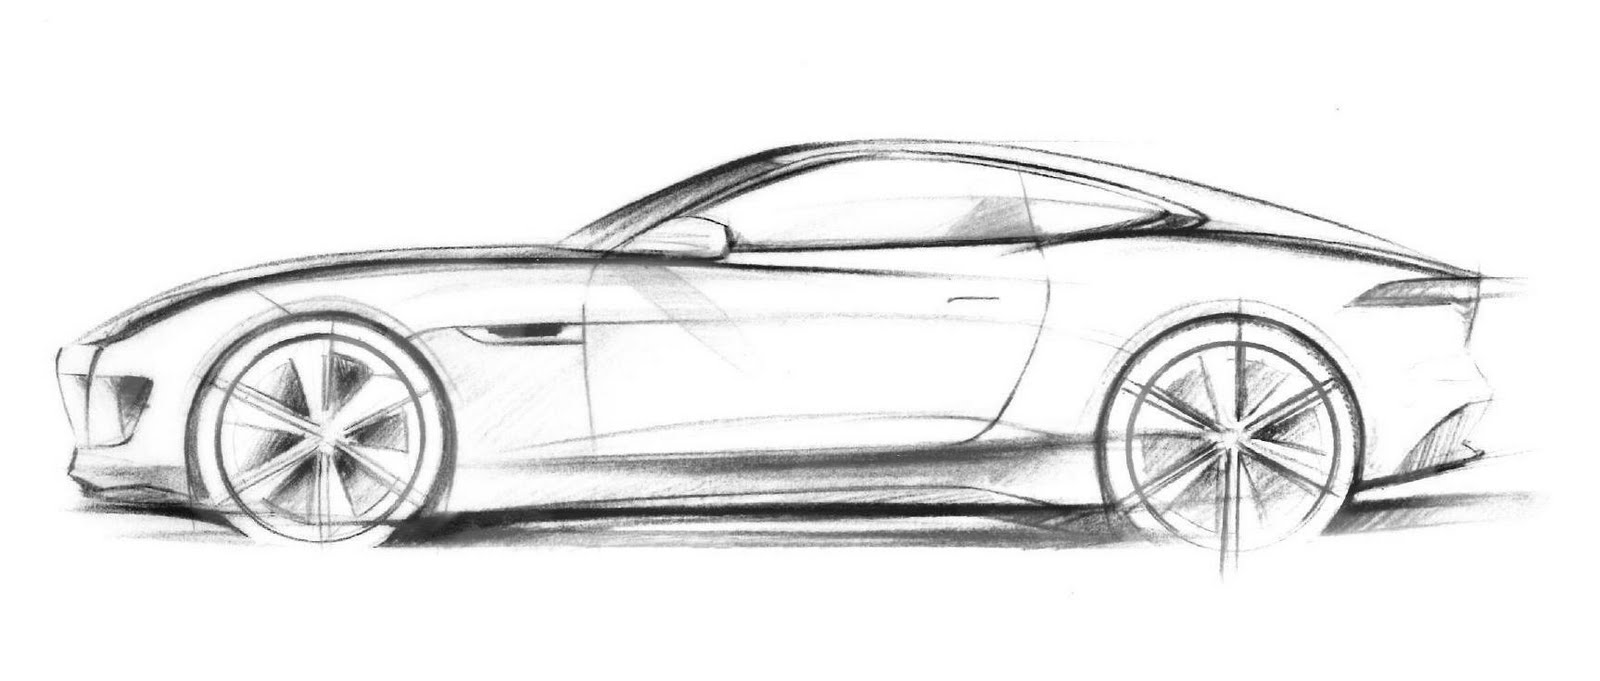 will be the Jaguar CX16